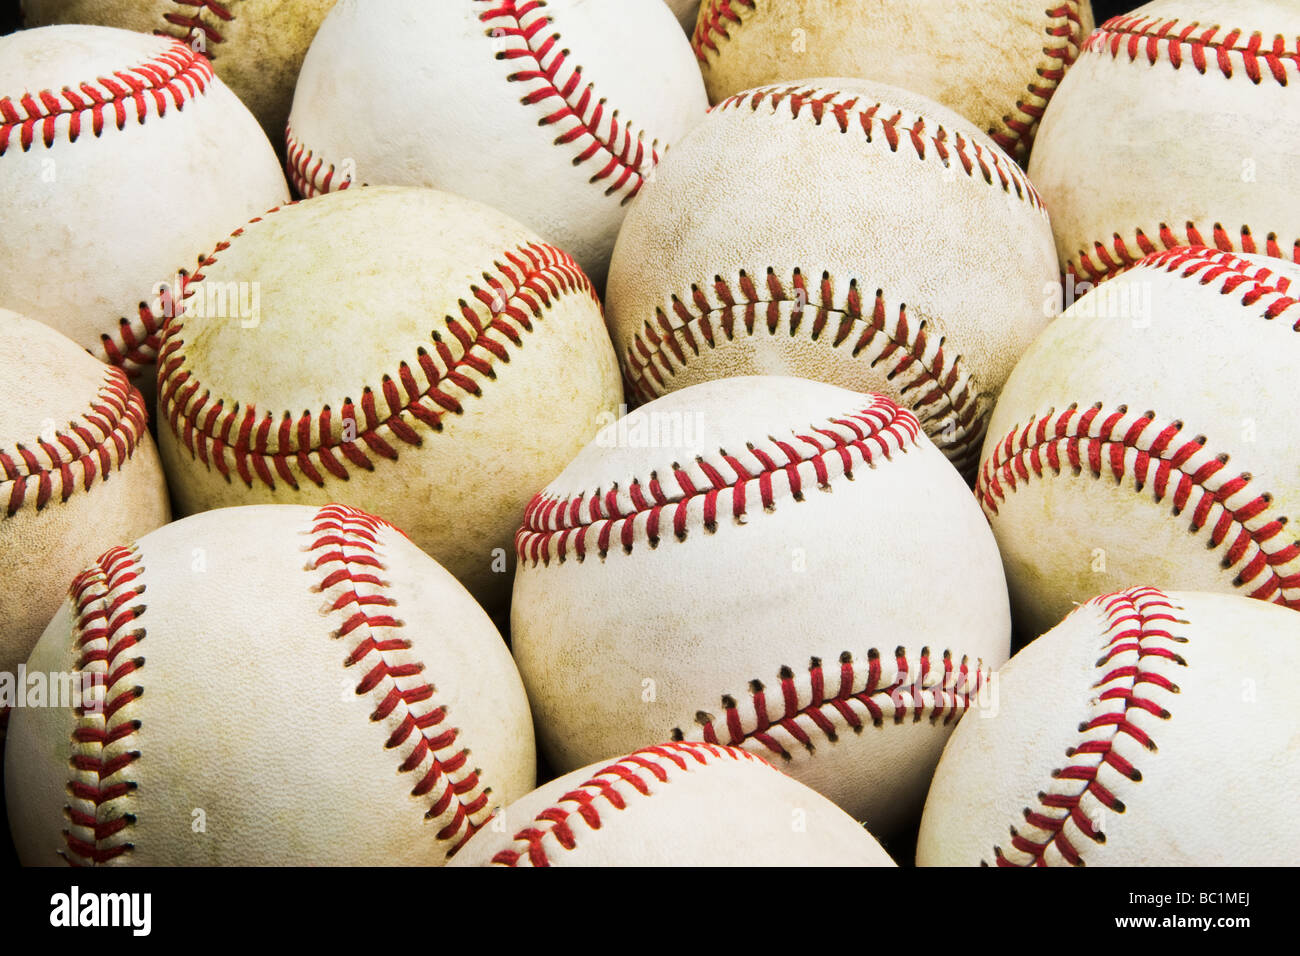 Downward, frontal view of group of used worn baseballs in tight rows fill the whole image - Stock Image